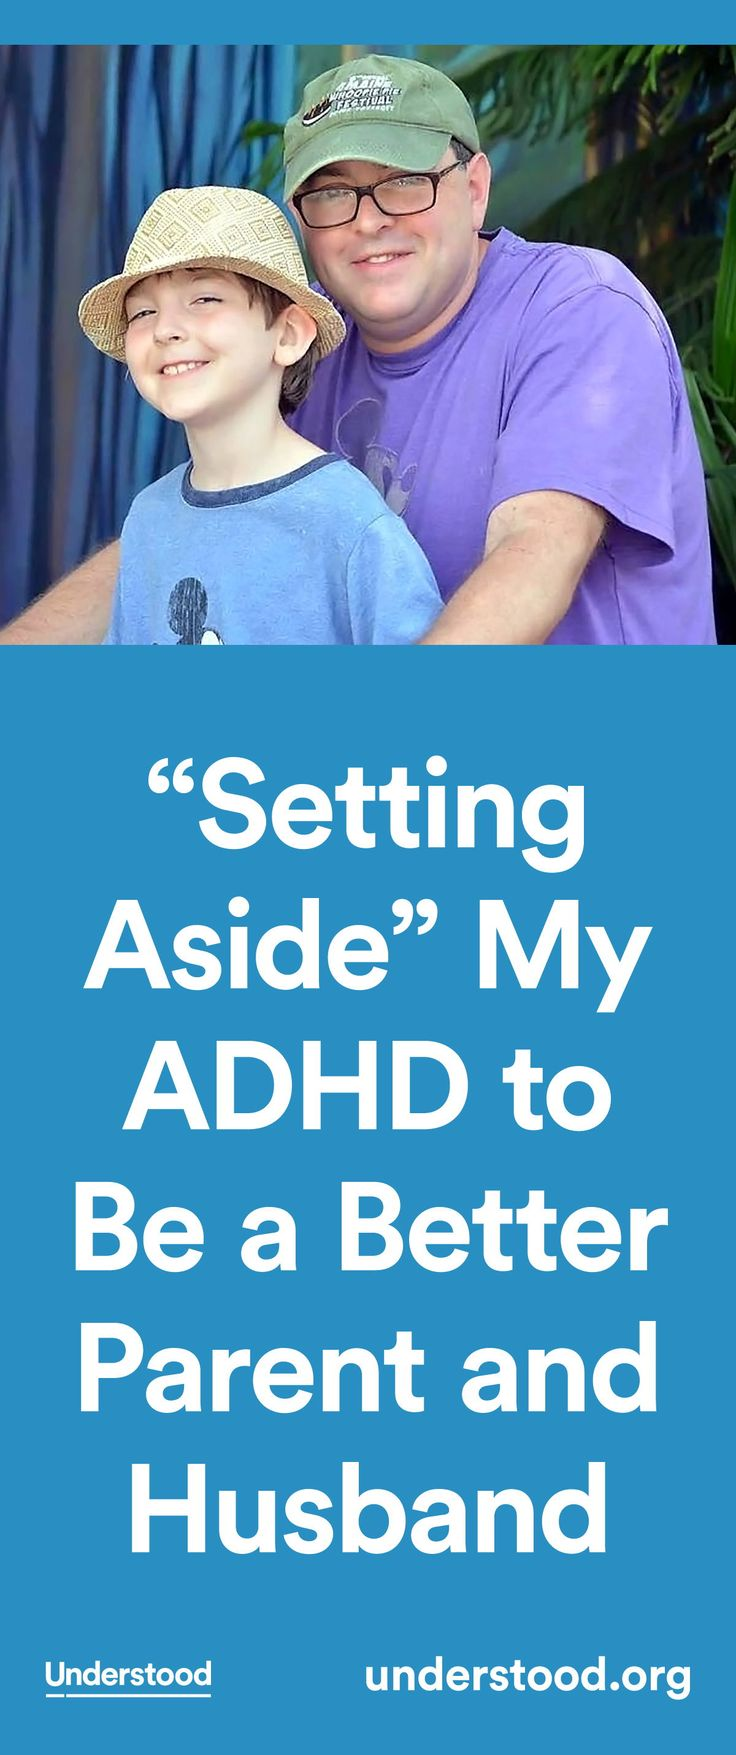 """""""I try to talk as little as possible about my ADHD because my wife and I are a team, and we need to pull together no matter what."""""""